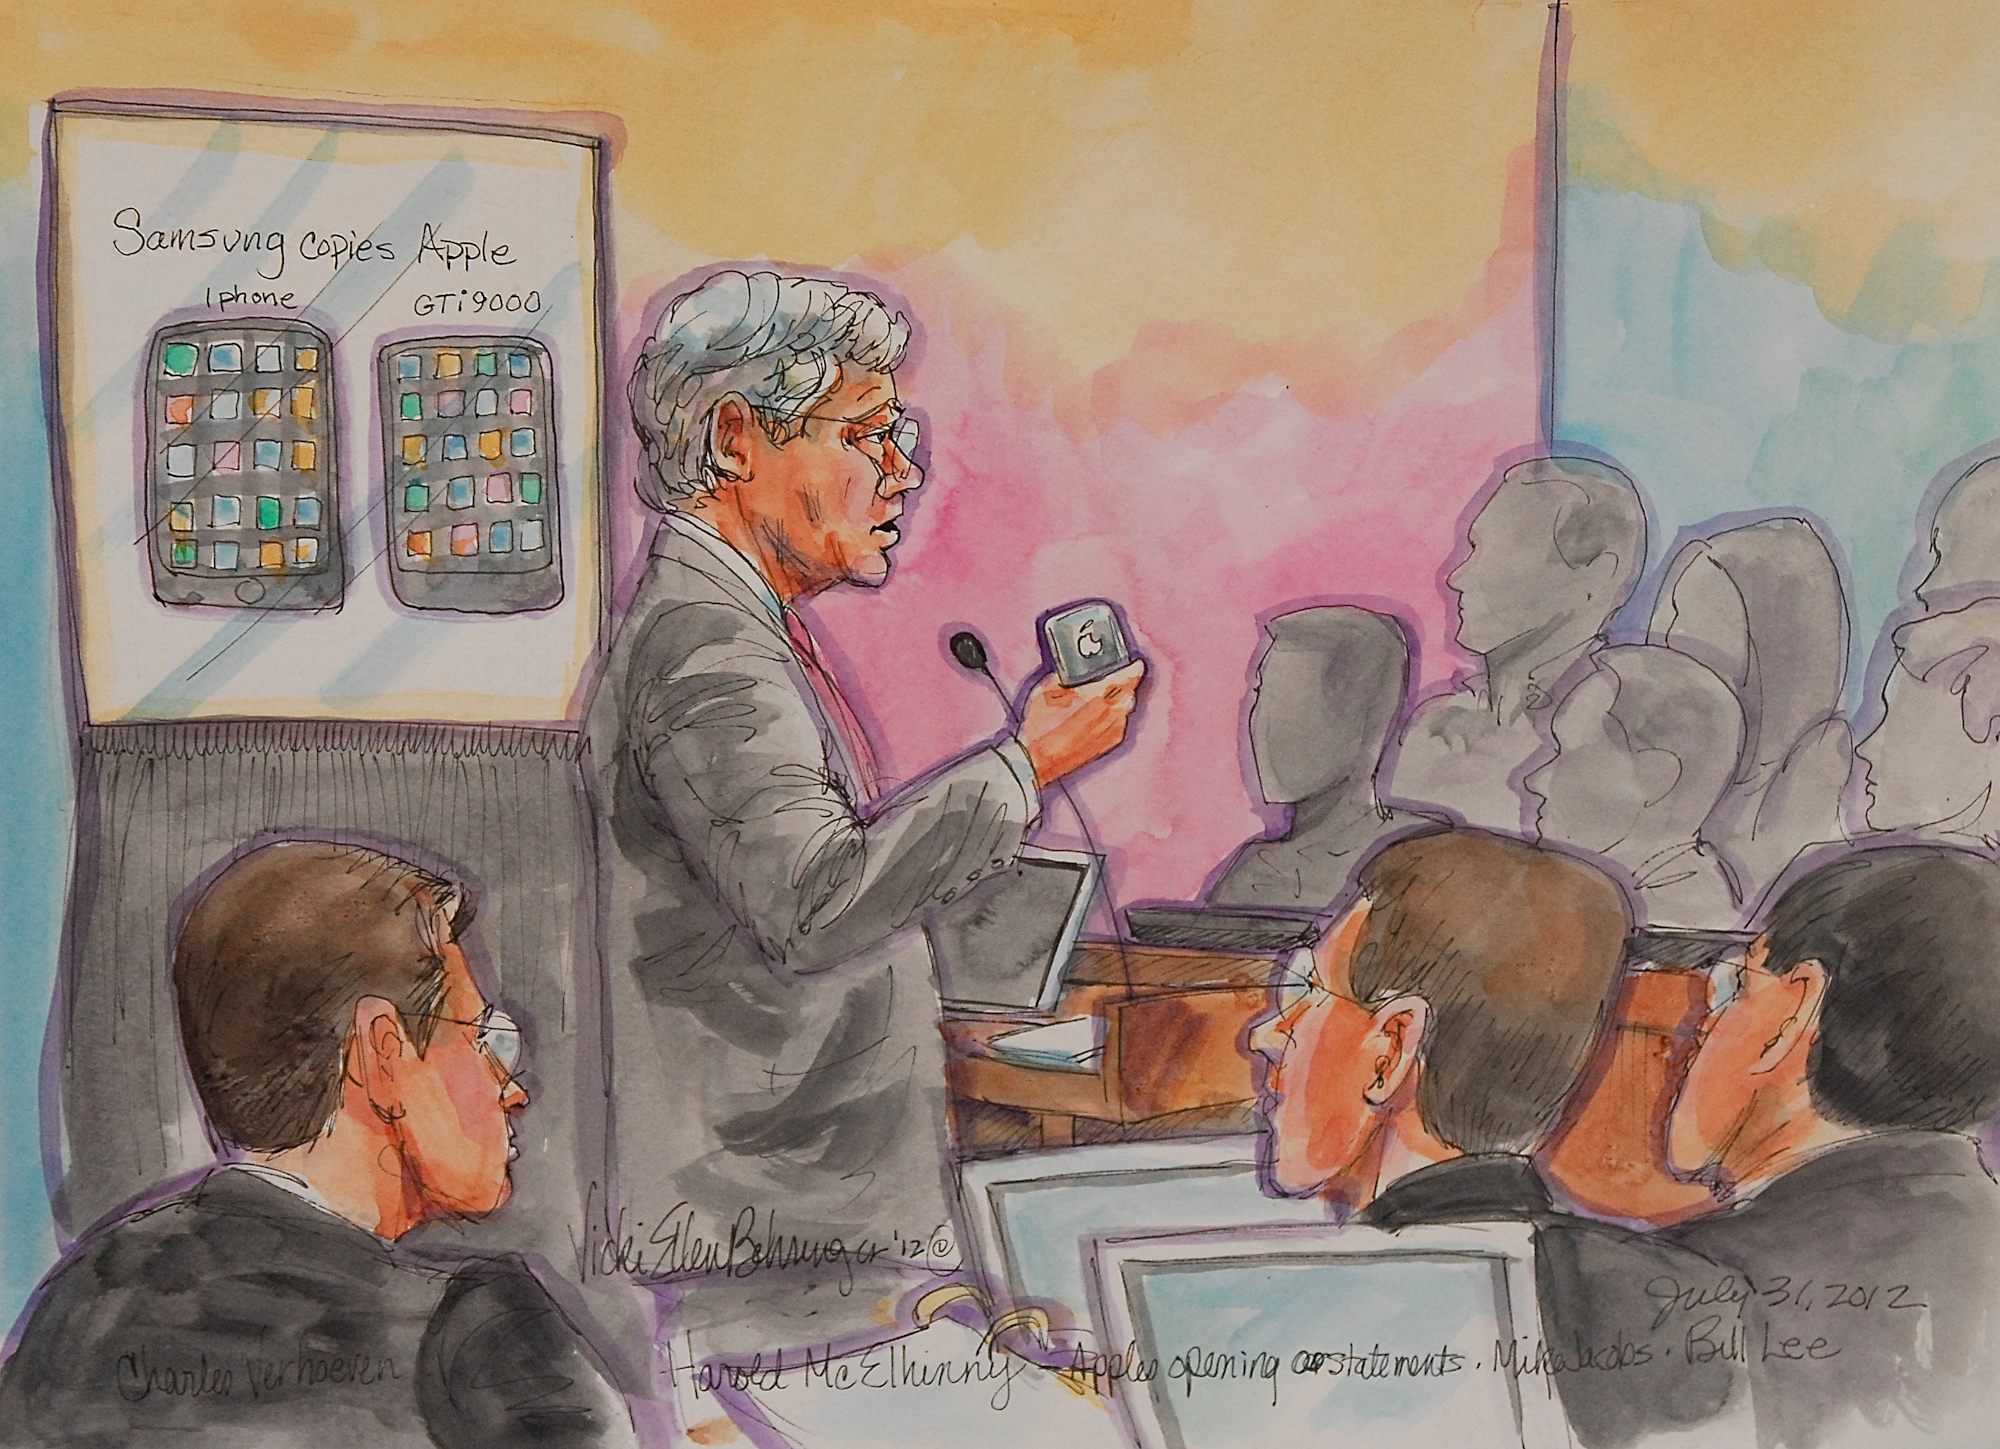 apple-samsung-court-drawings-13_2.jpg